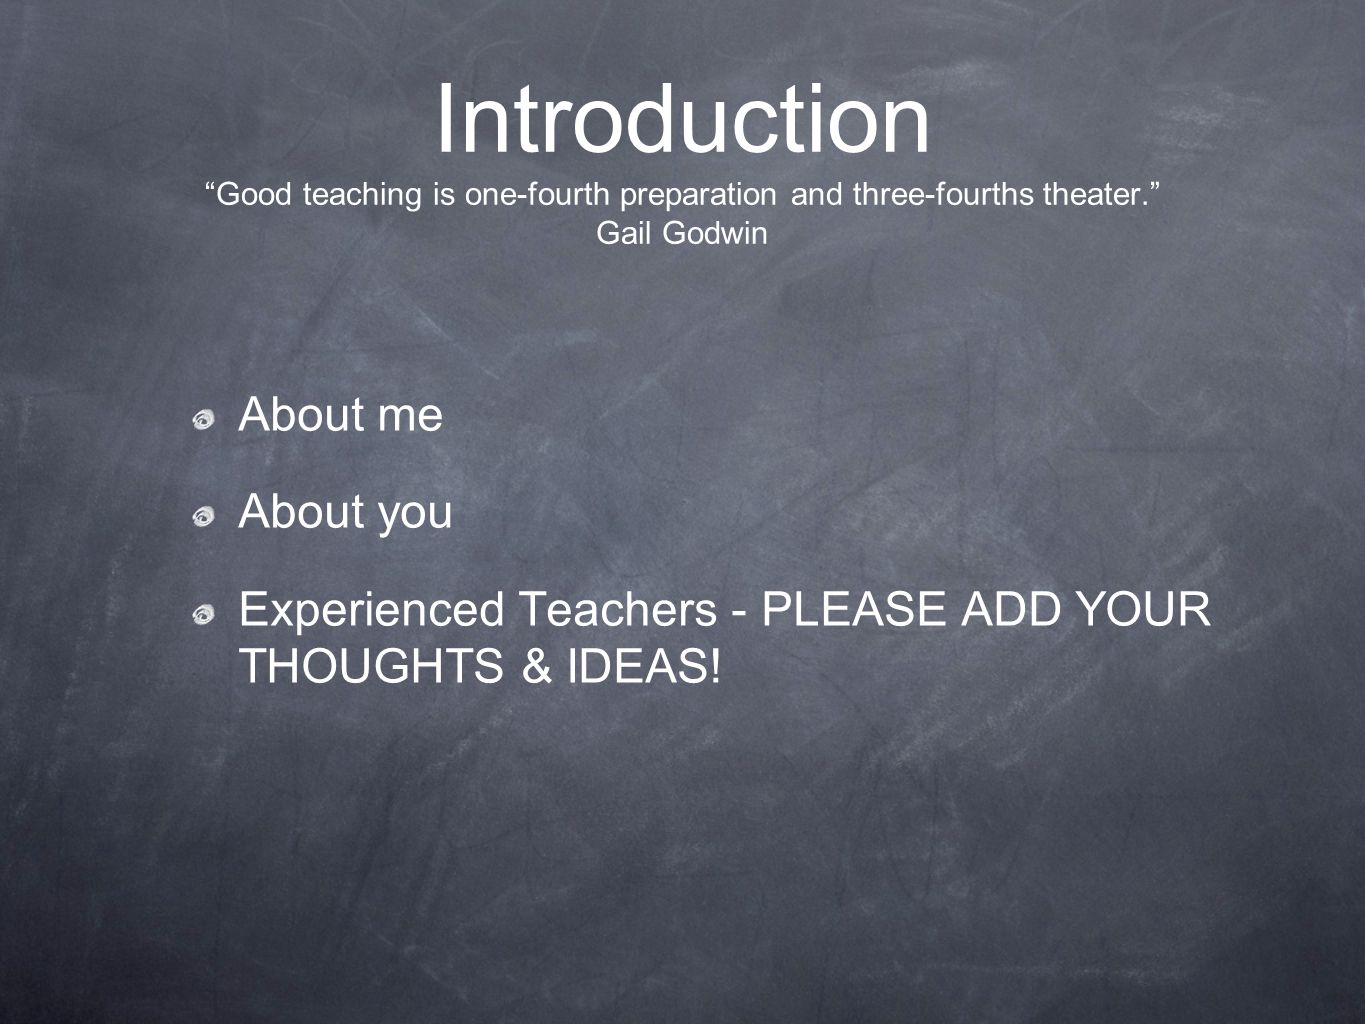 Introduction Good teaching is one-fourth preparation and three-fourths theater. Gail Godwin About me About you Experienced Teachers - PLEASE ADD YOUR THOUGHTS & IDEAS!